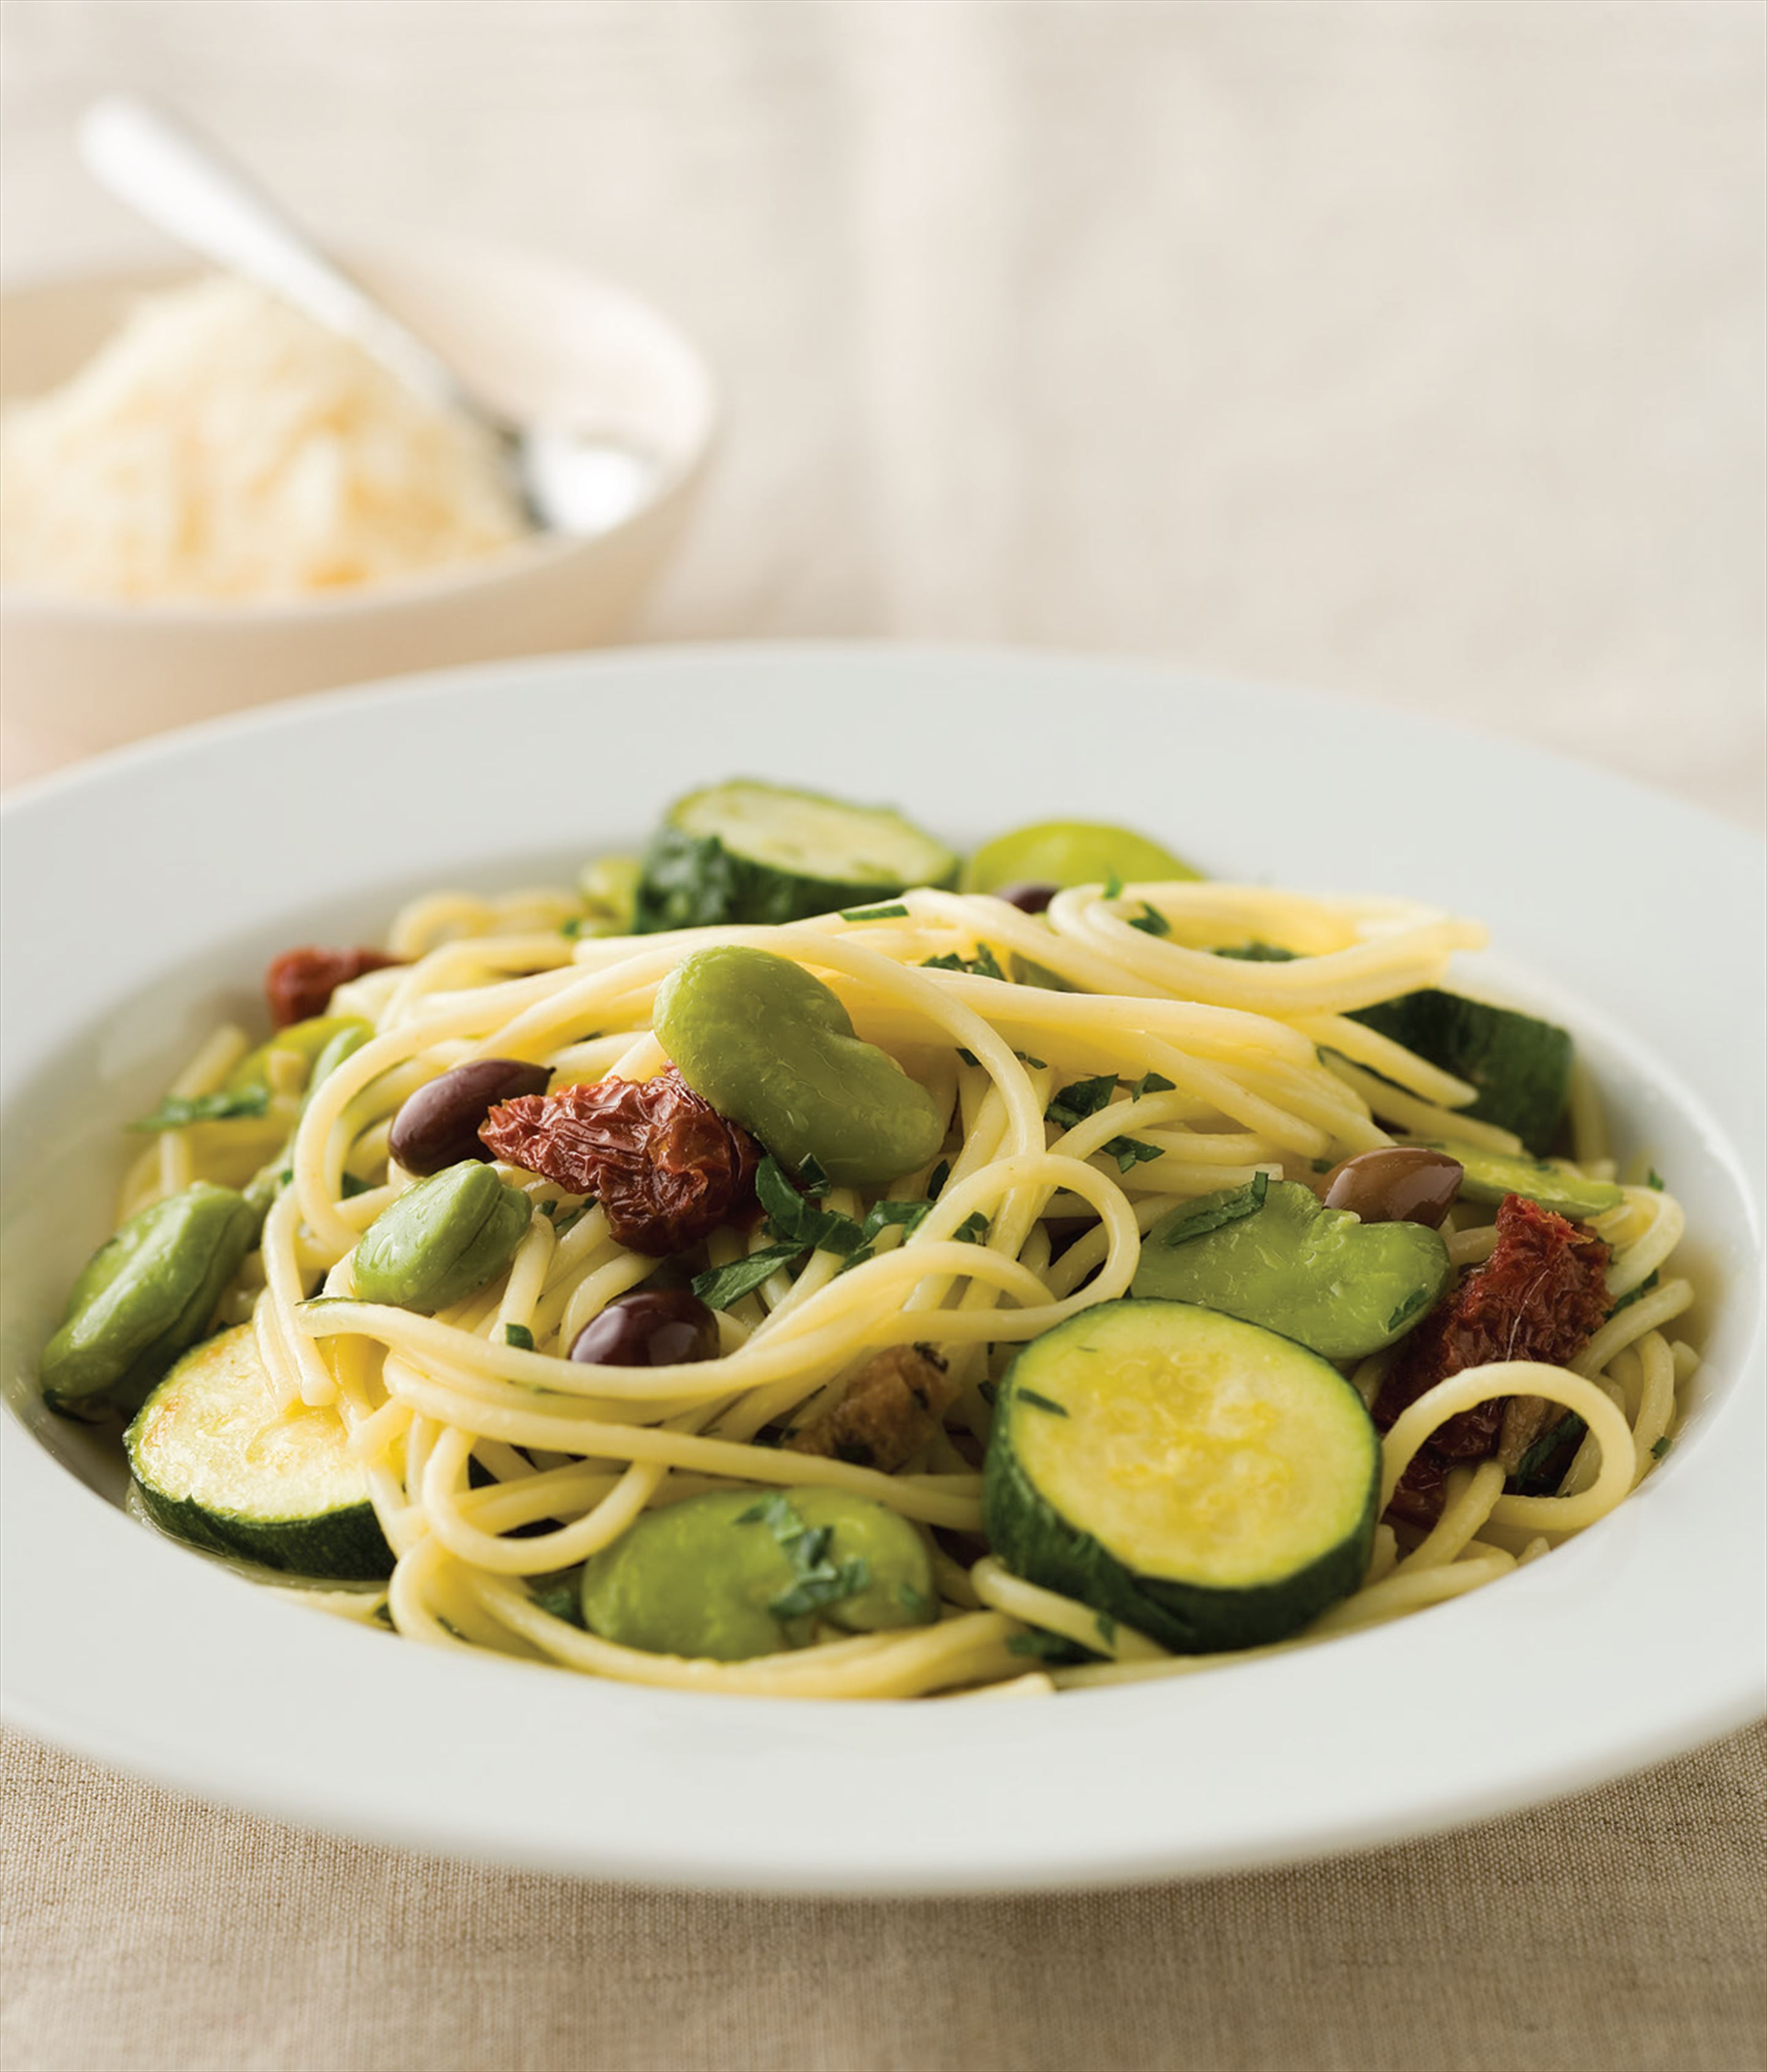 Spaghetti with zucchini, broad beans and olives